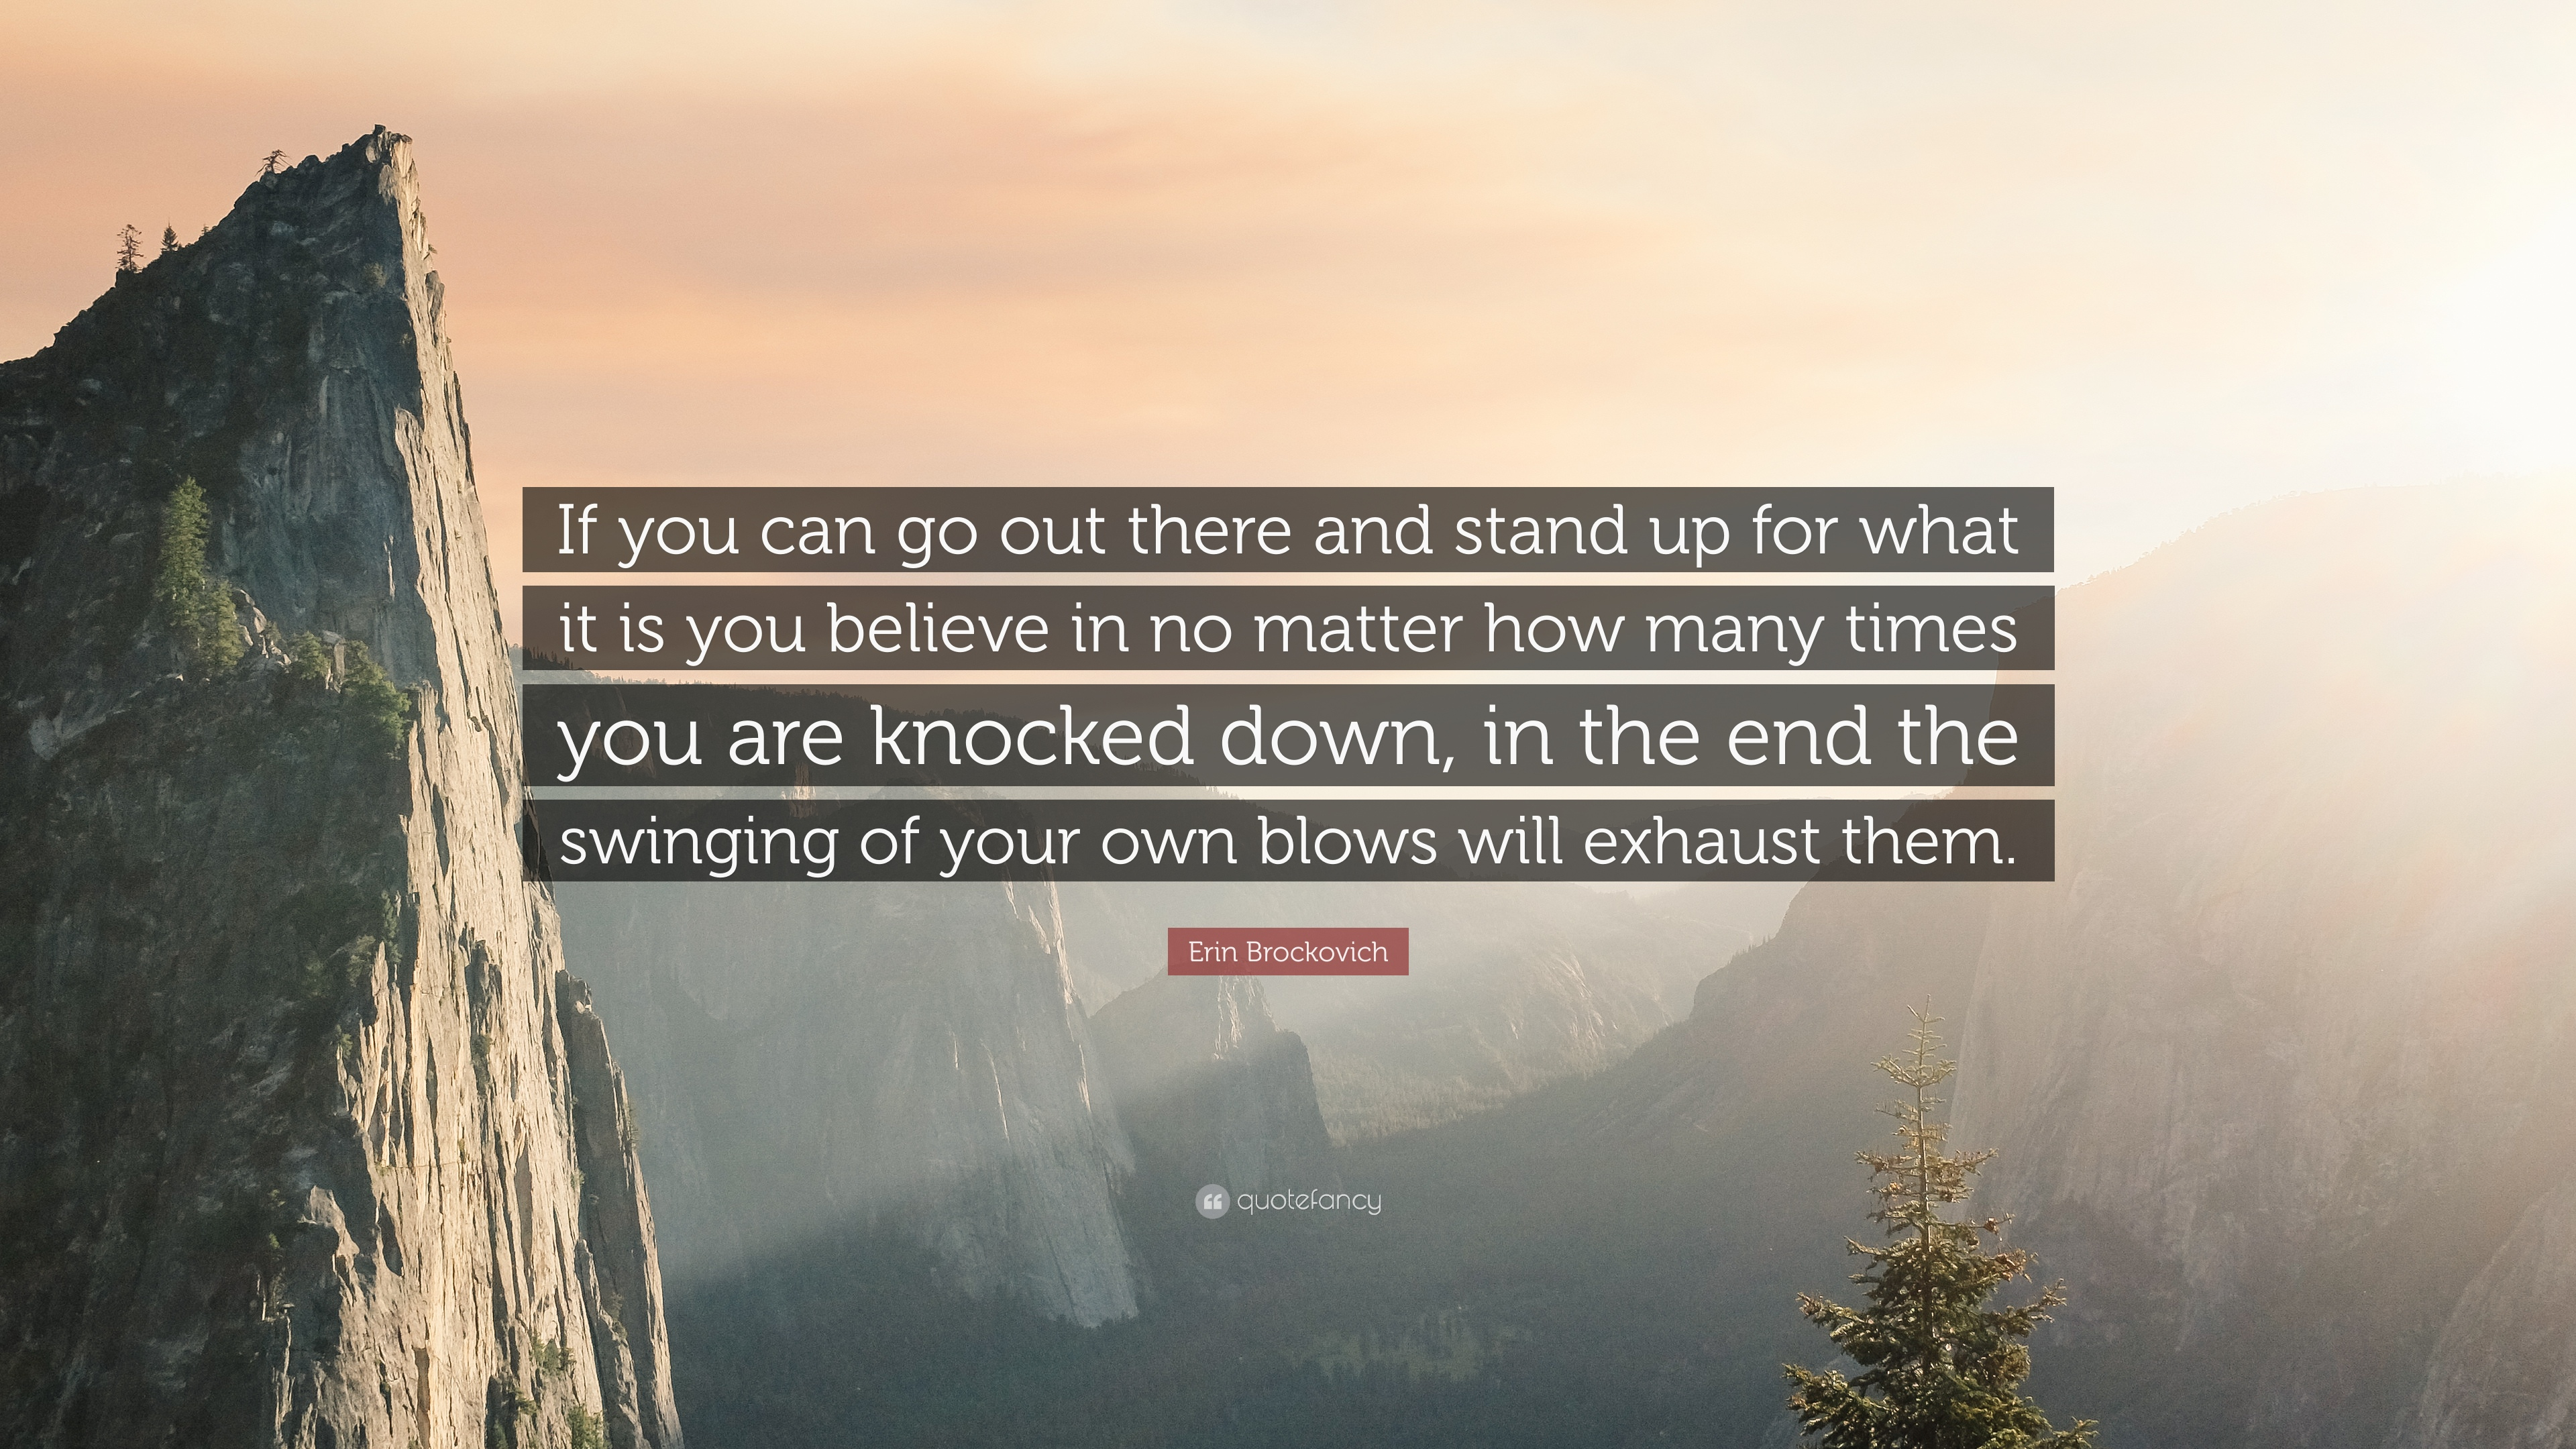 Erin Brockovich Quote If You Can Go Out There And Stand Up For